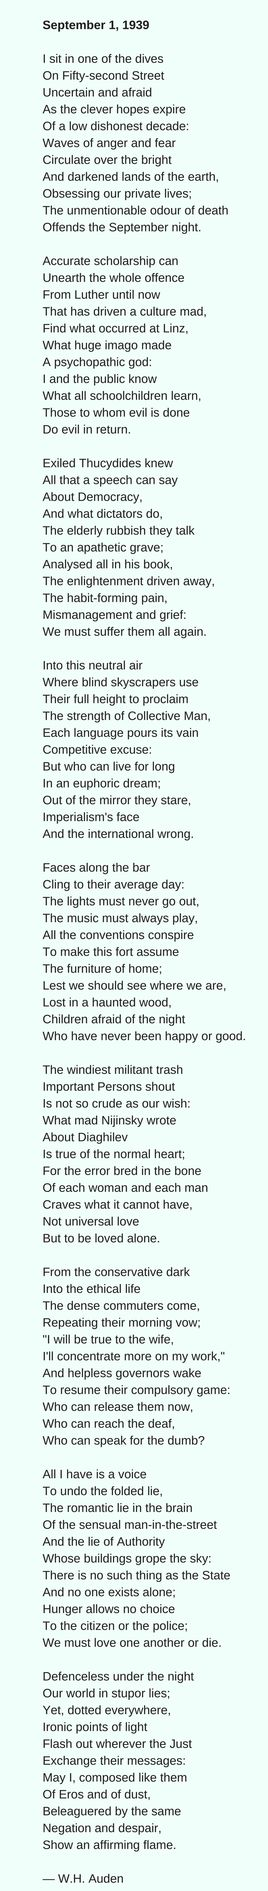 As Hitler's tanks were rolling into Poland in 1939 W.H. Auden was in New York and in love. He urges us to keep an affirming flame even in the darkest times.